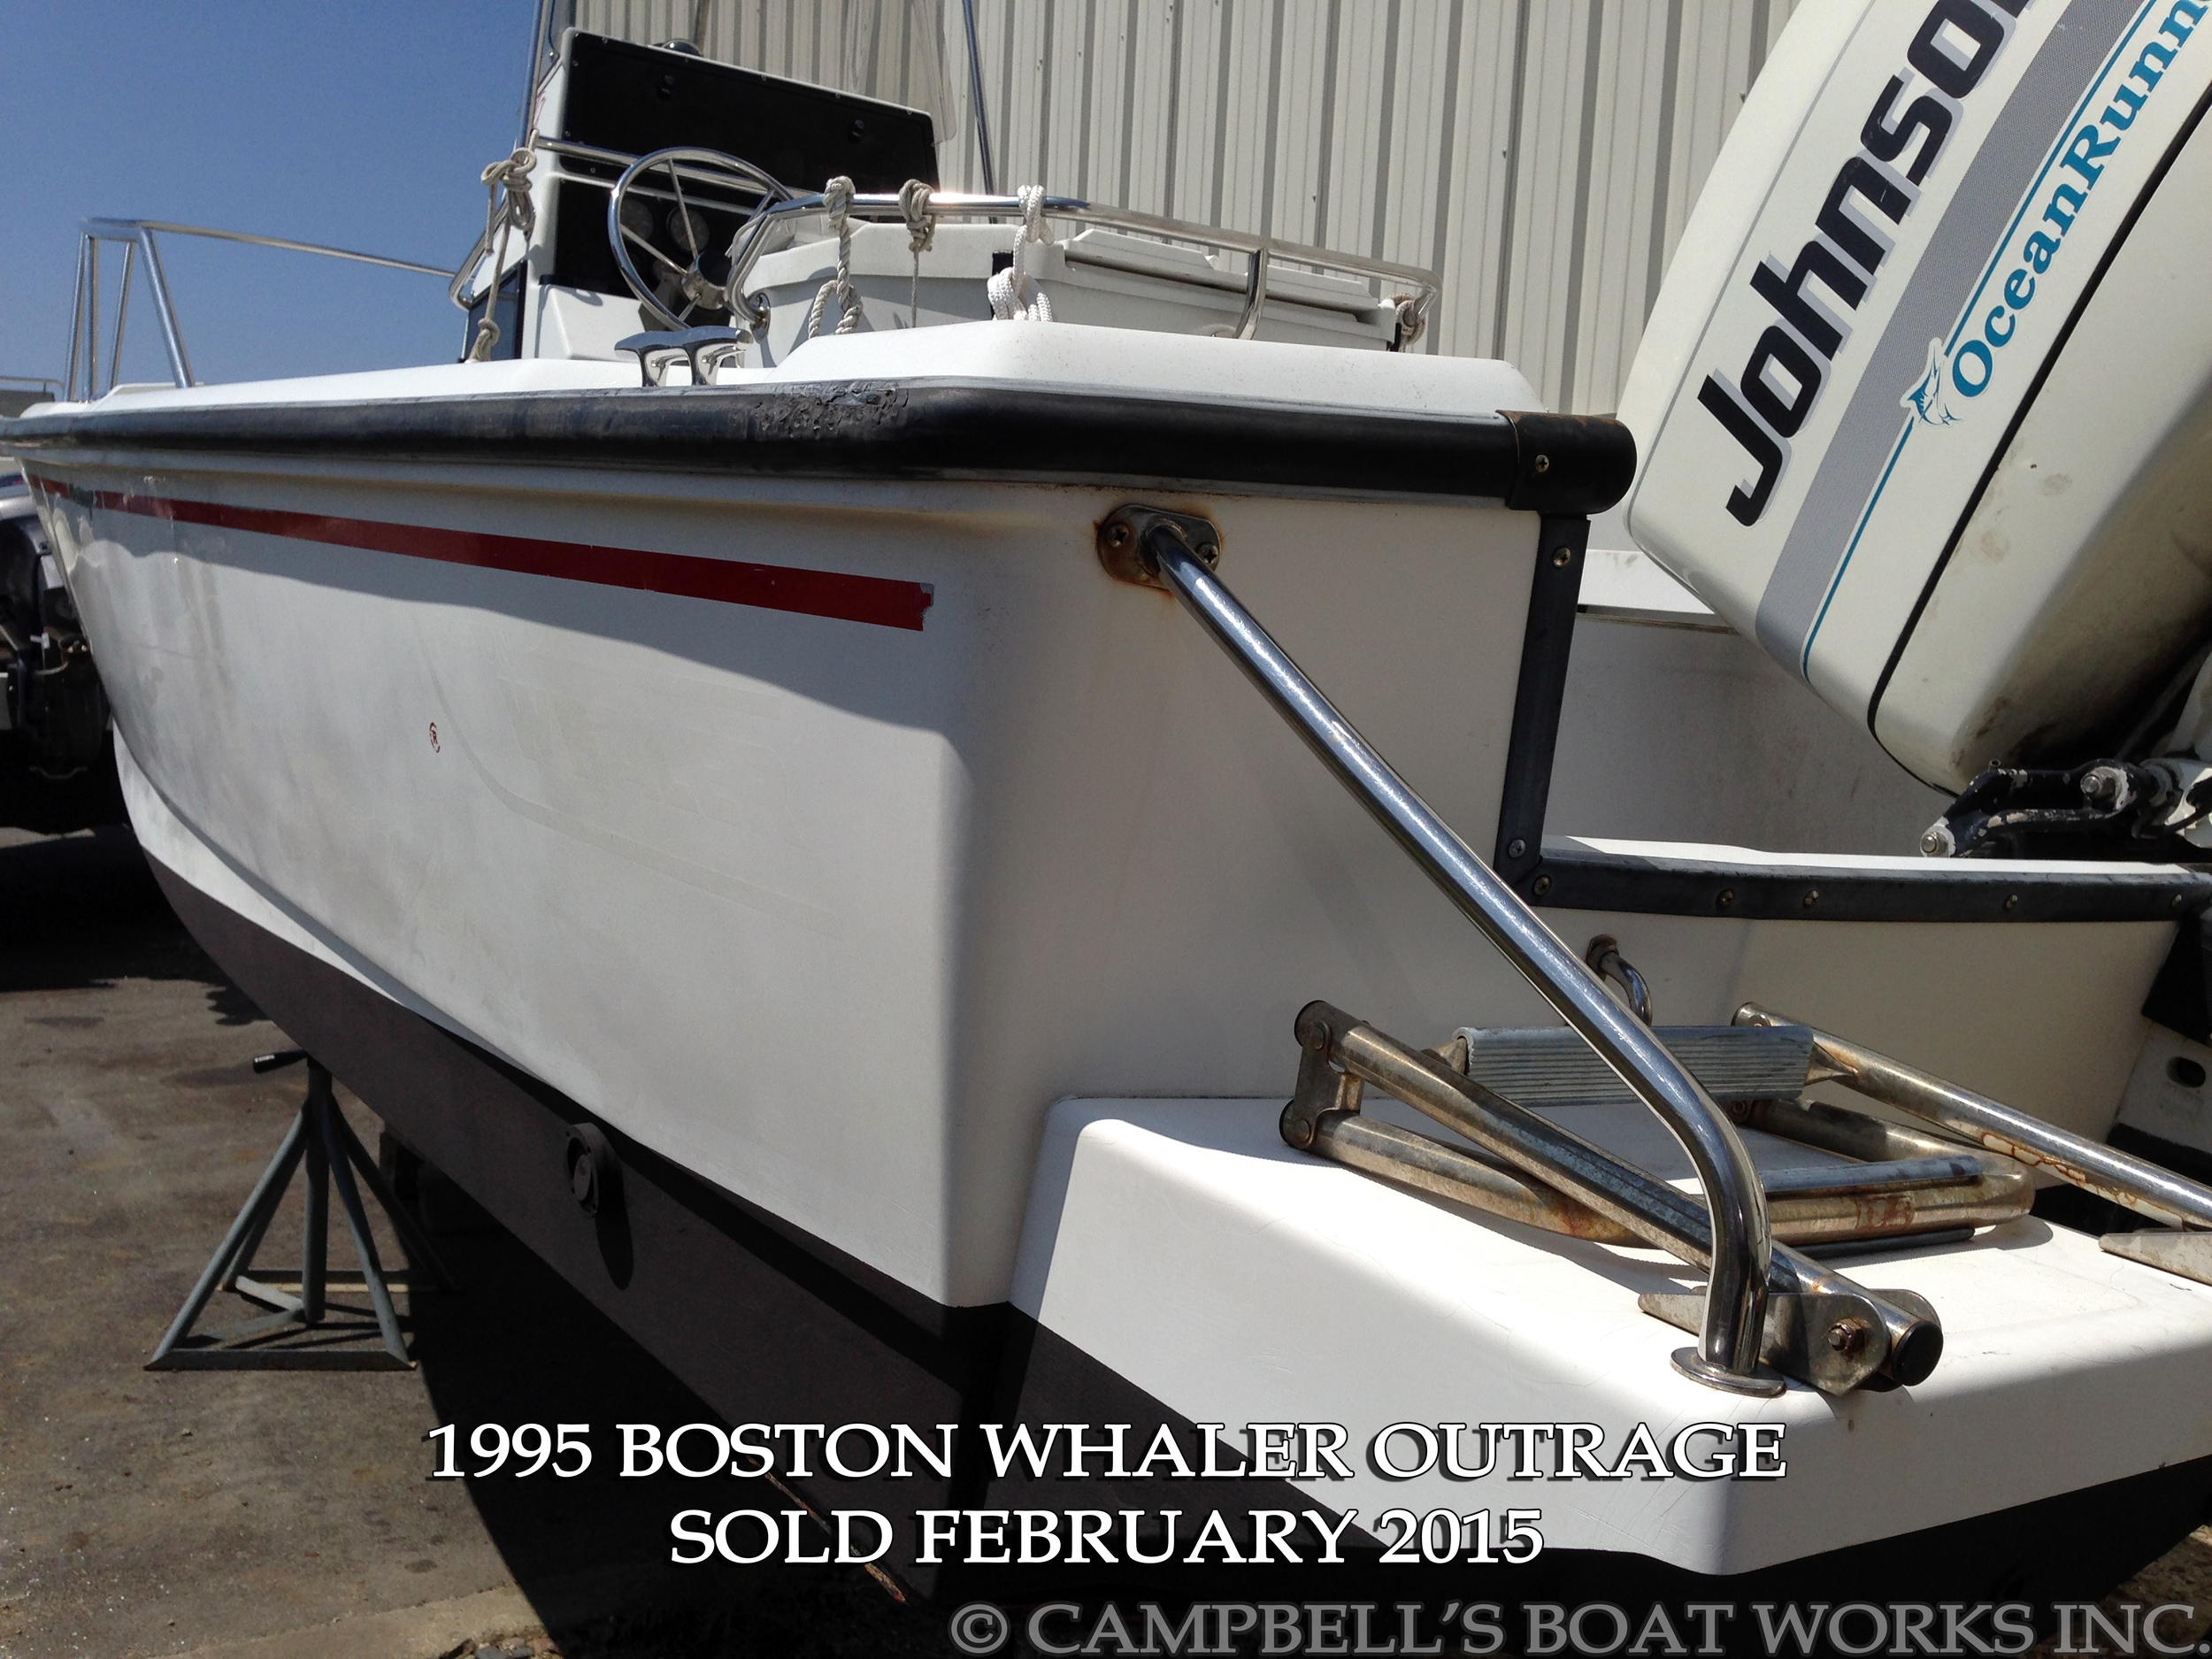 21' Boston Whaler Outrage for sale, Cape Cod Massachusetts. Located in North Falmouth. Call for More information! 508-563-9800